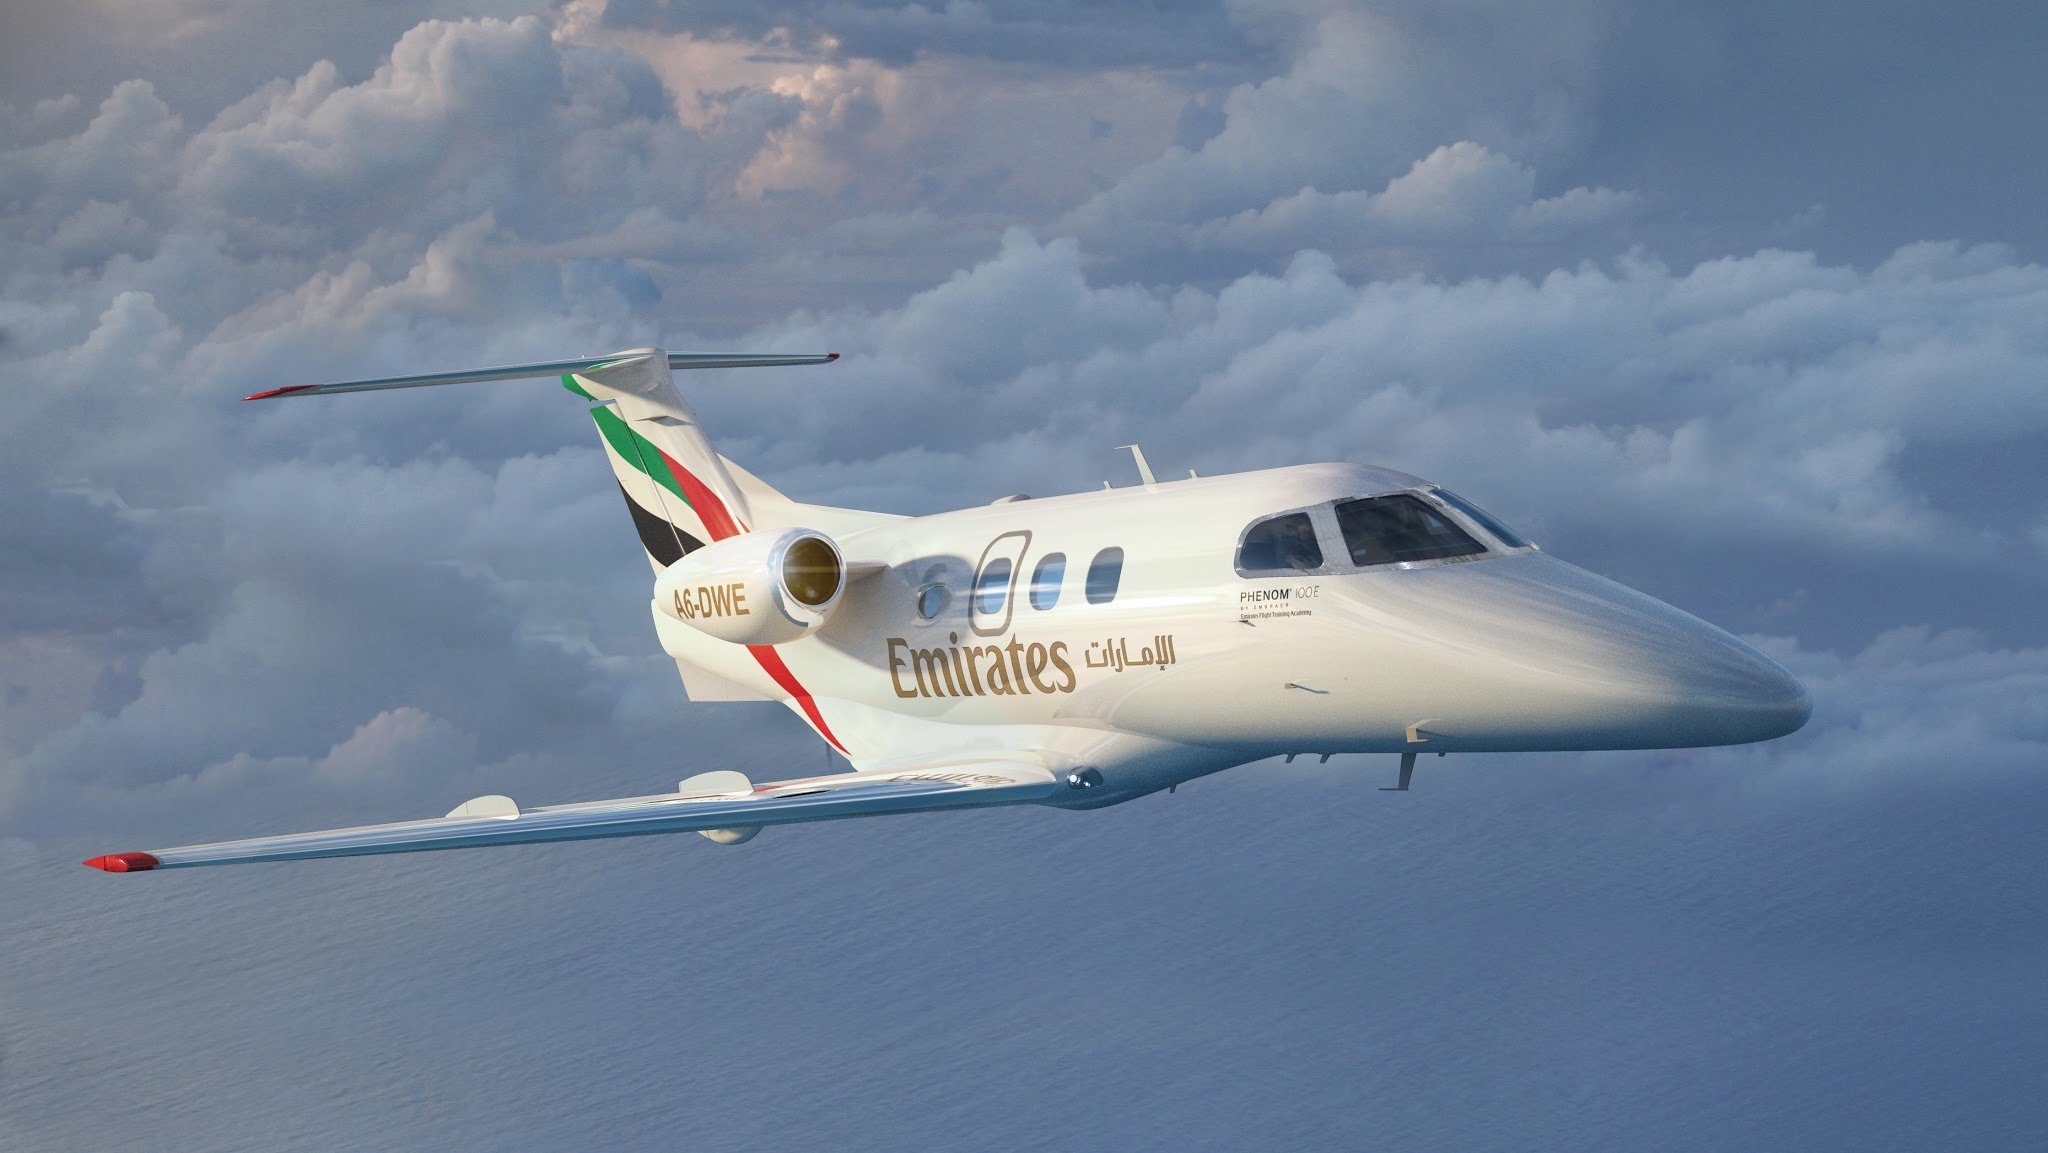 É MAIS QUE VOAR | Emirates Flight Training Academy assina pedido para até 10 jatos Phenom 100E